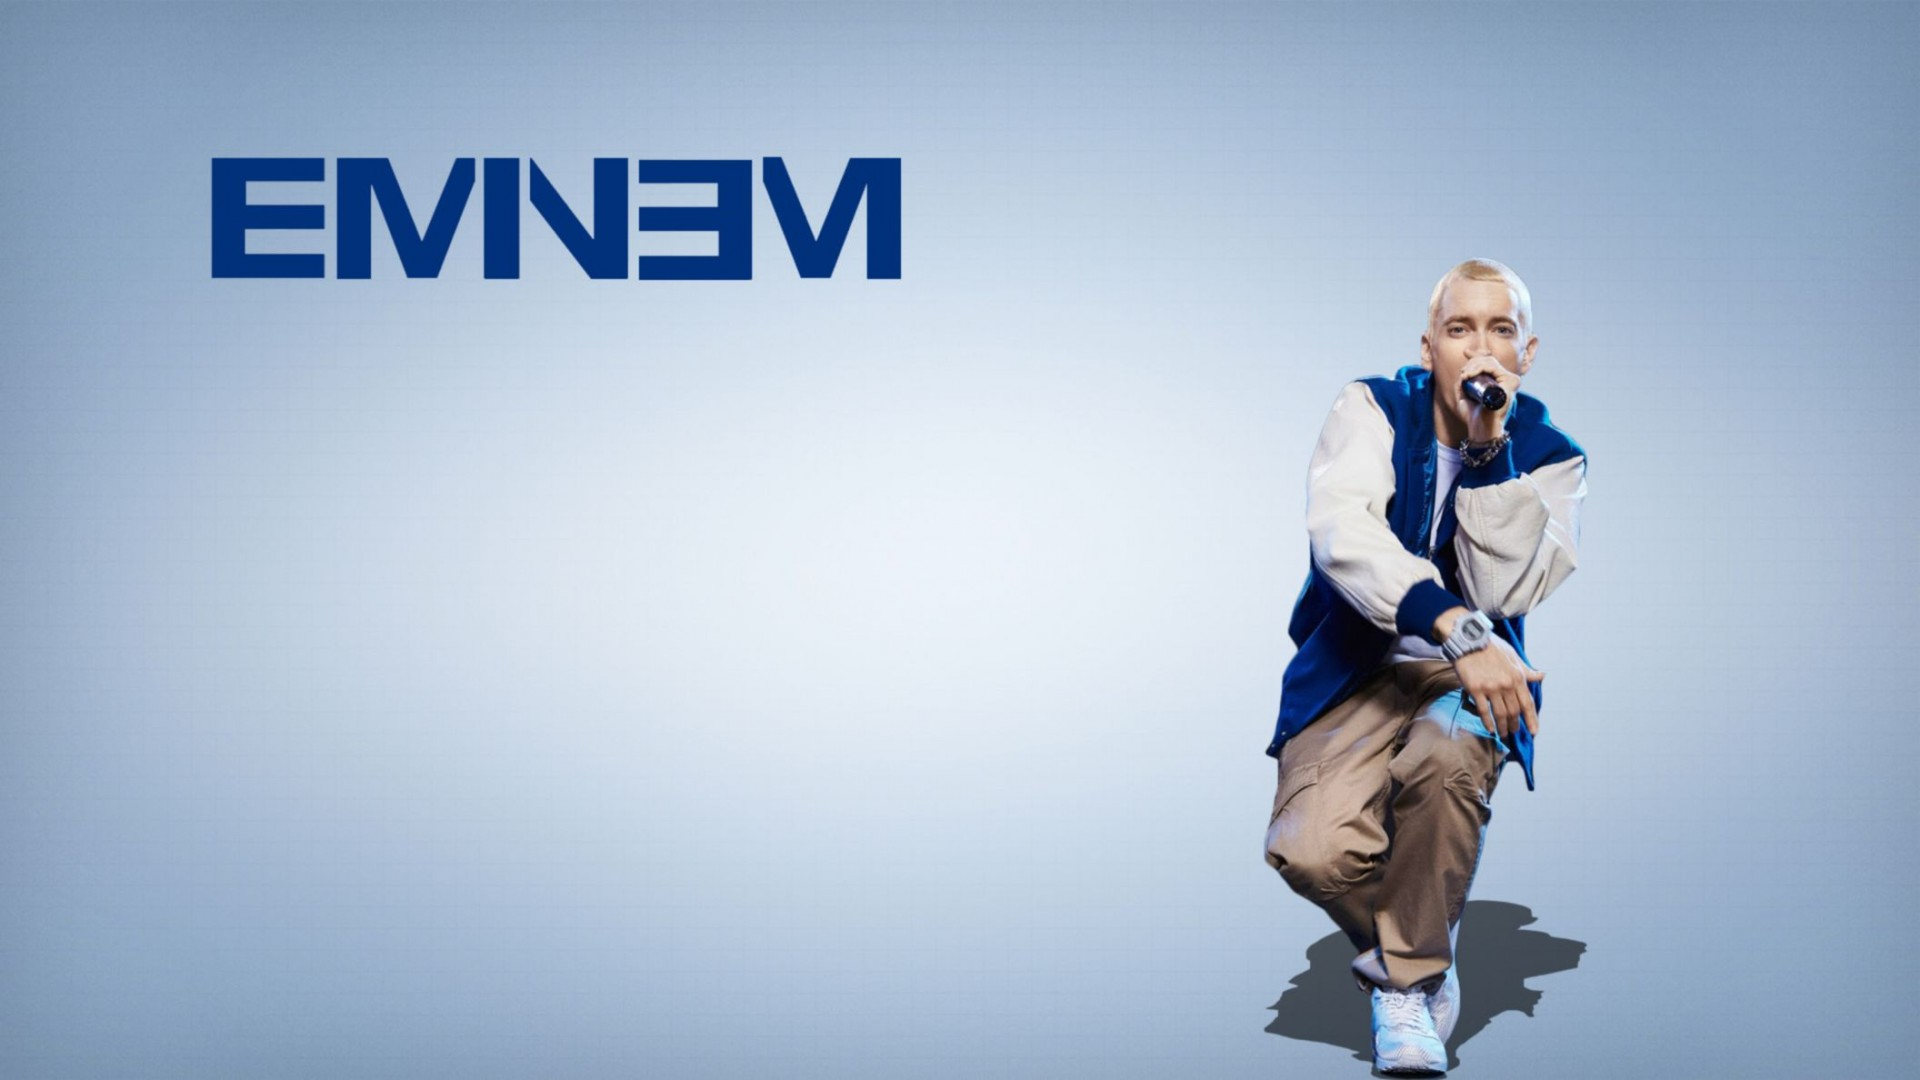 Eminem American Rapper HD Wallpaper